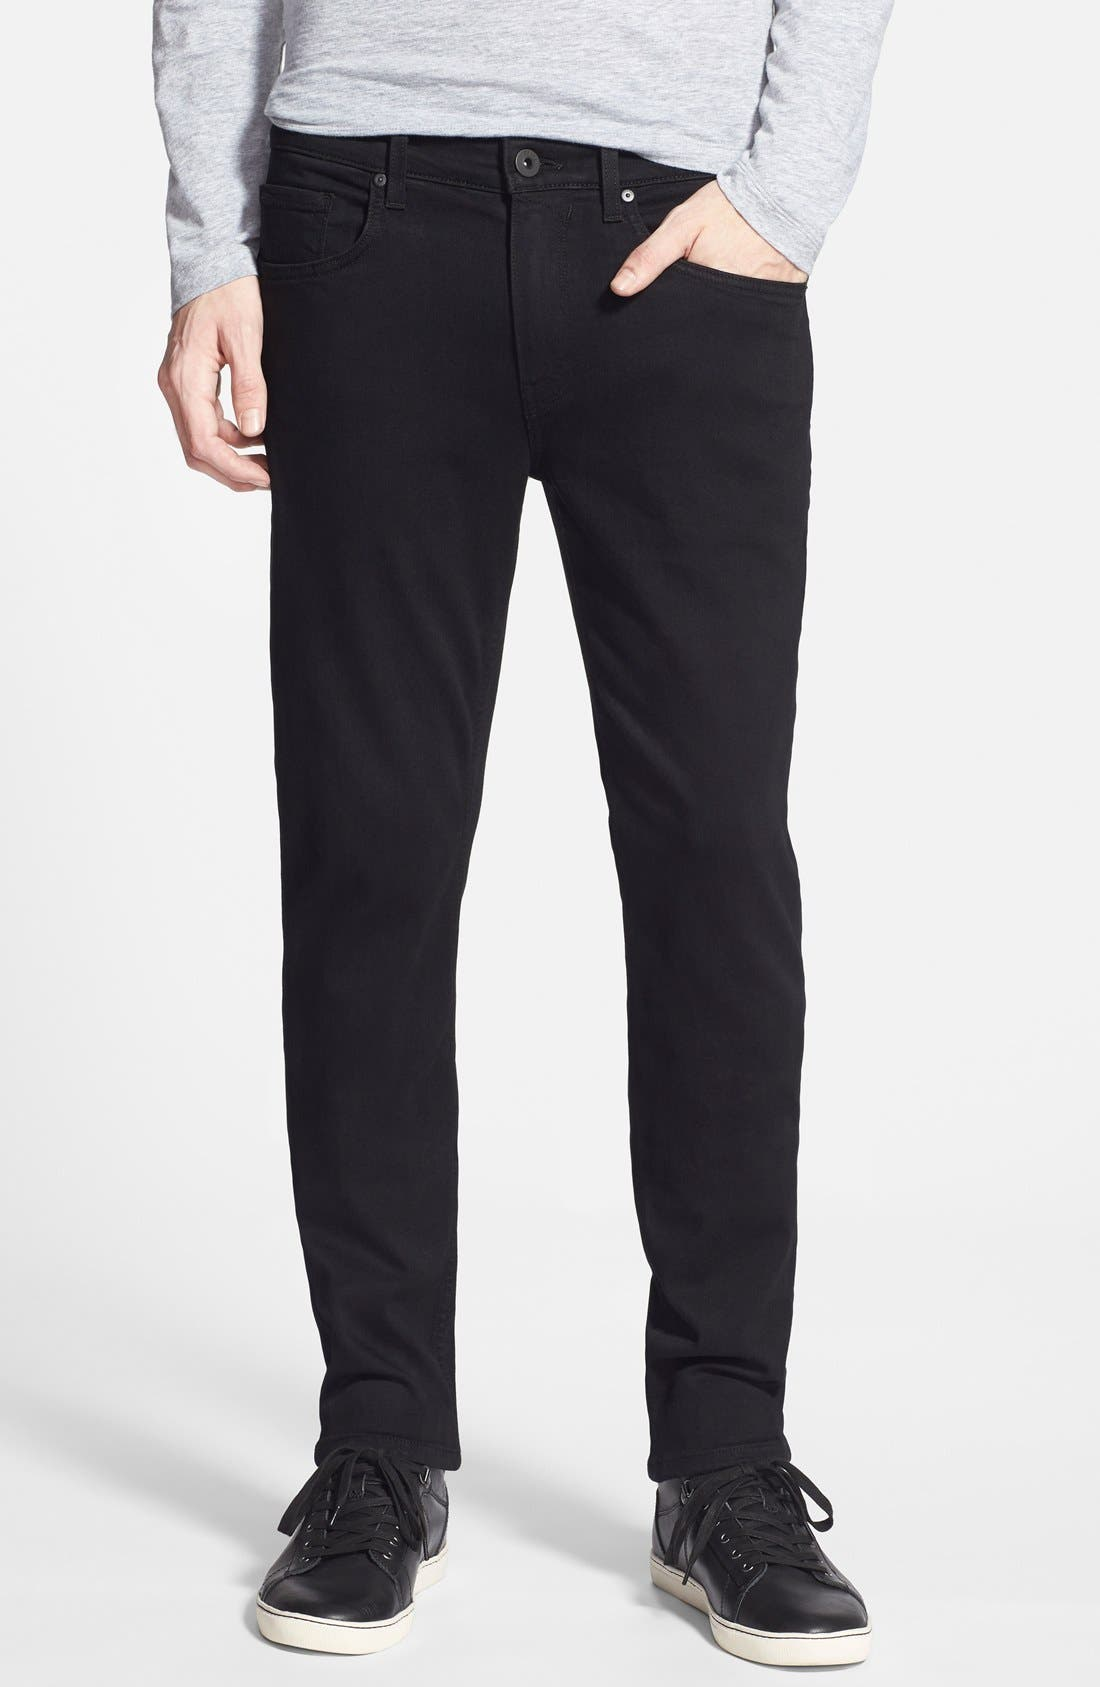 PAIGE Transcend – Lennox Slim Fit Jeans (Black Shadow) | Nordstrom